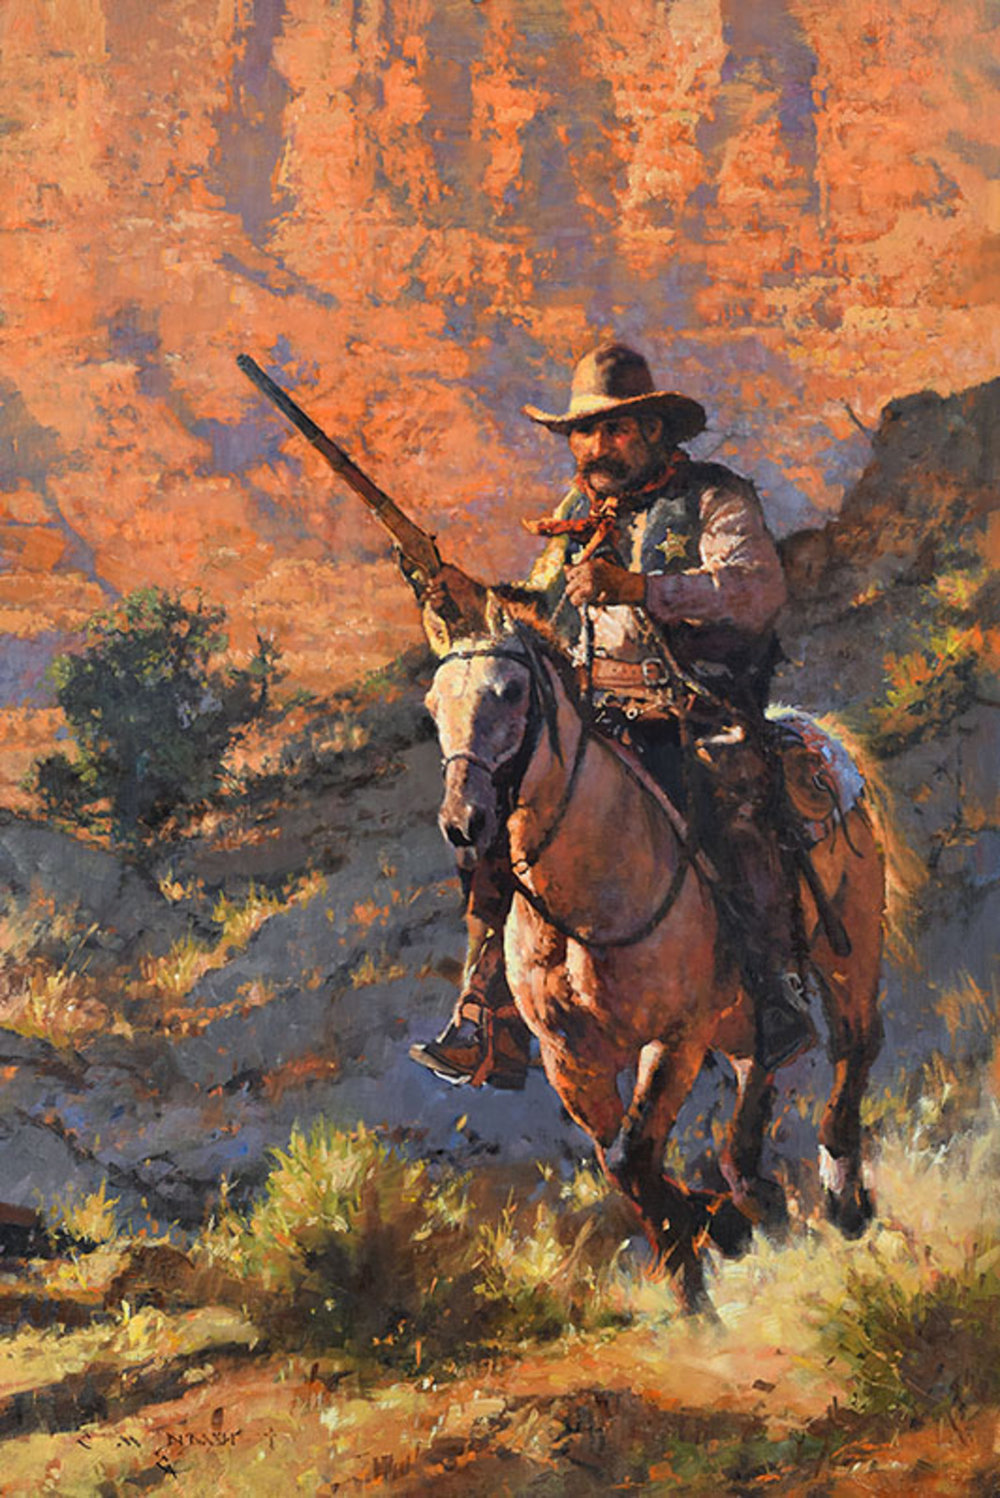 """ON THE OUTLAW TRAIL""  - oil on linen - 36"" x 24"" Sold at   PRIX DE WEST  , The National Cowboy & Western Heritage Museum Oklahoma City, OK  June 7-9, 2018"